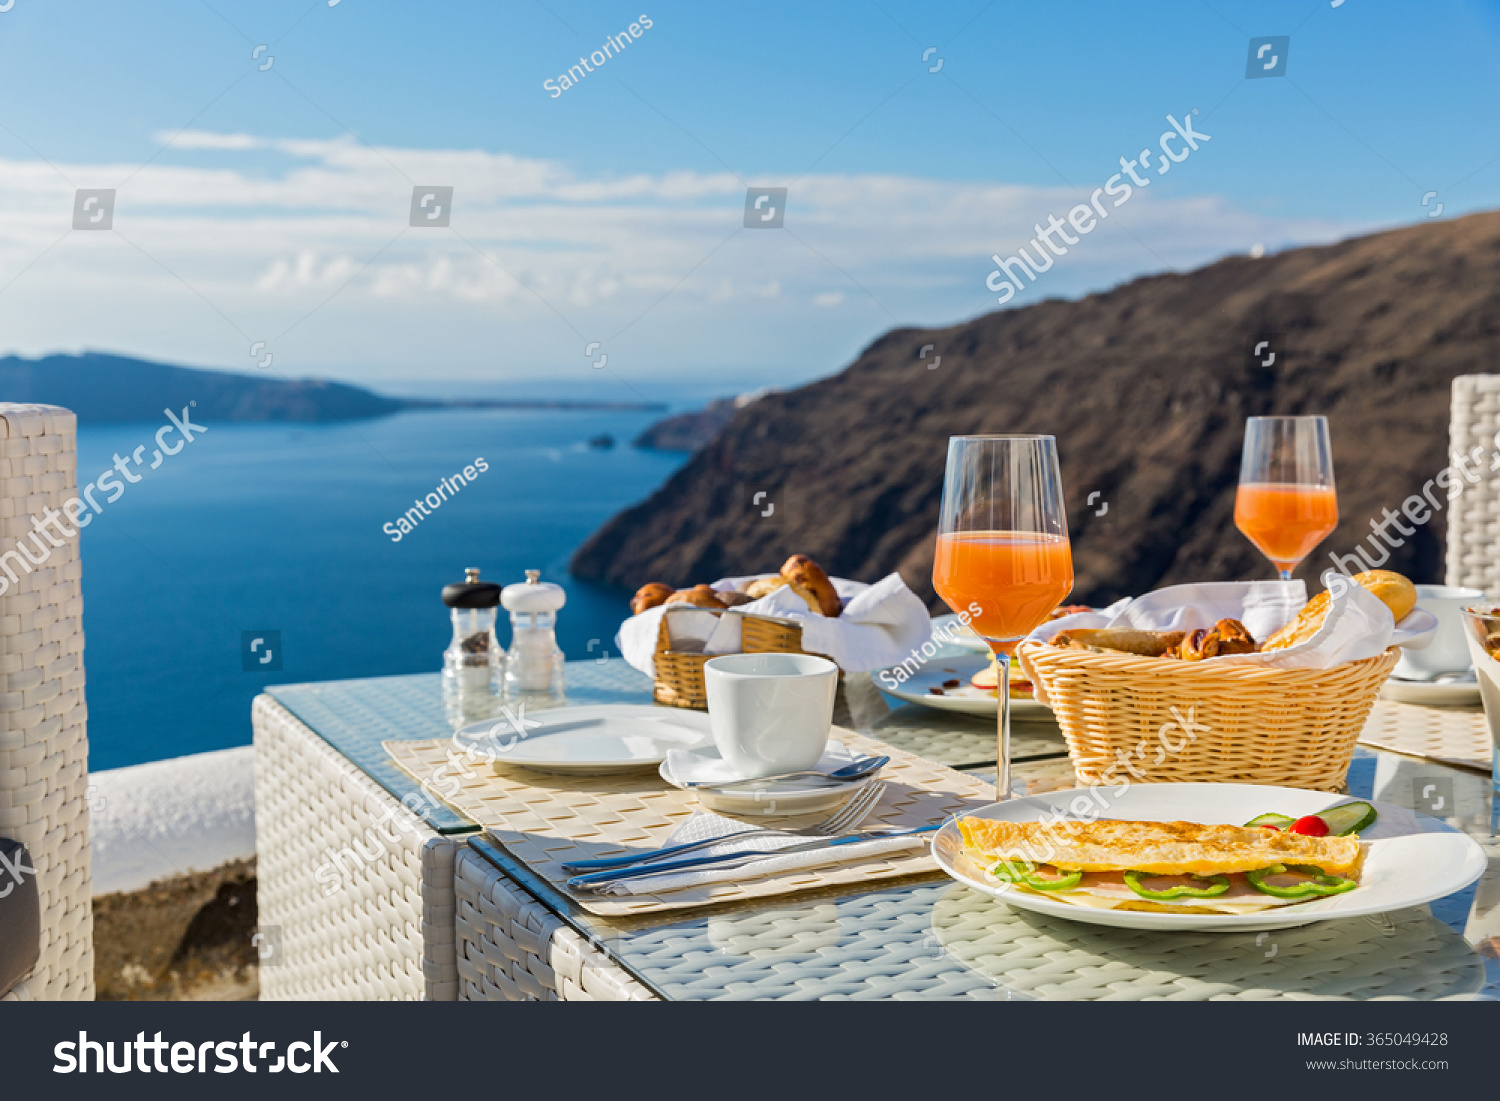 stock-photo--morning-and-breakfast-on-the-beach-sea-365049428.jpg